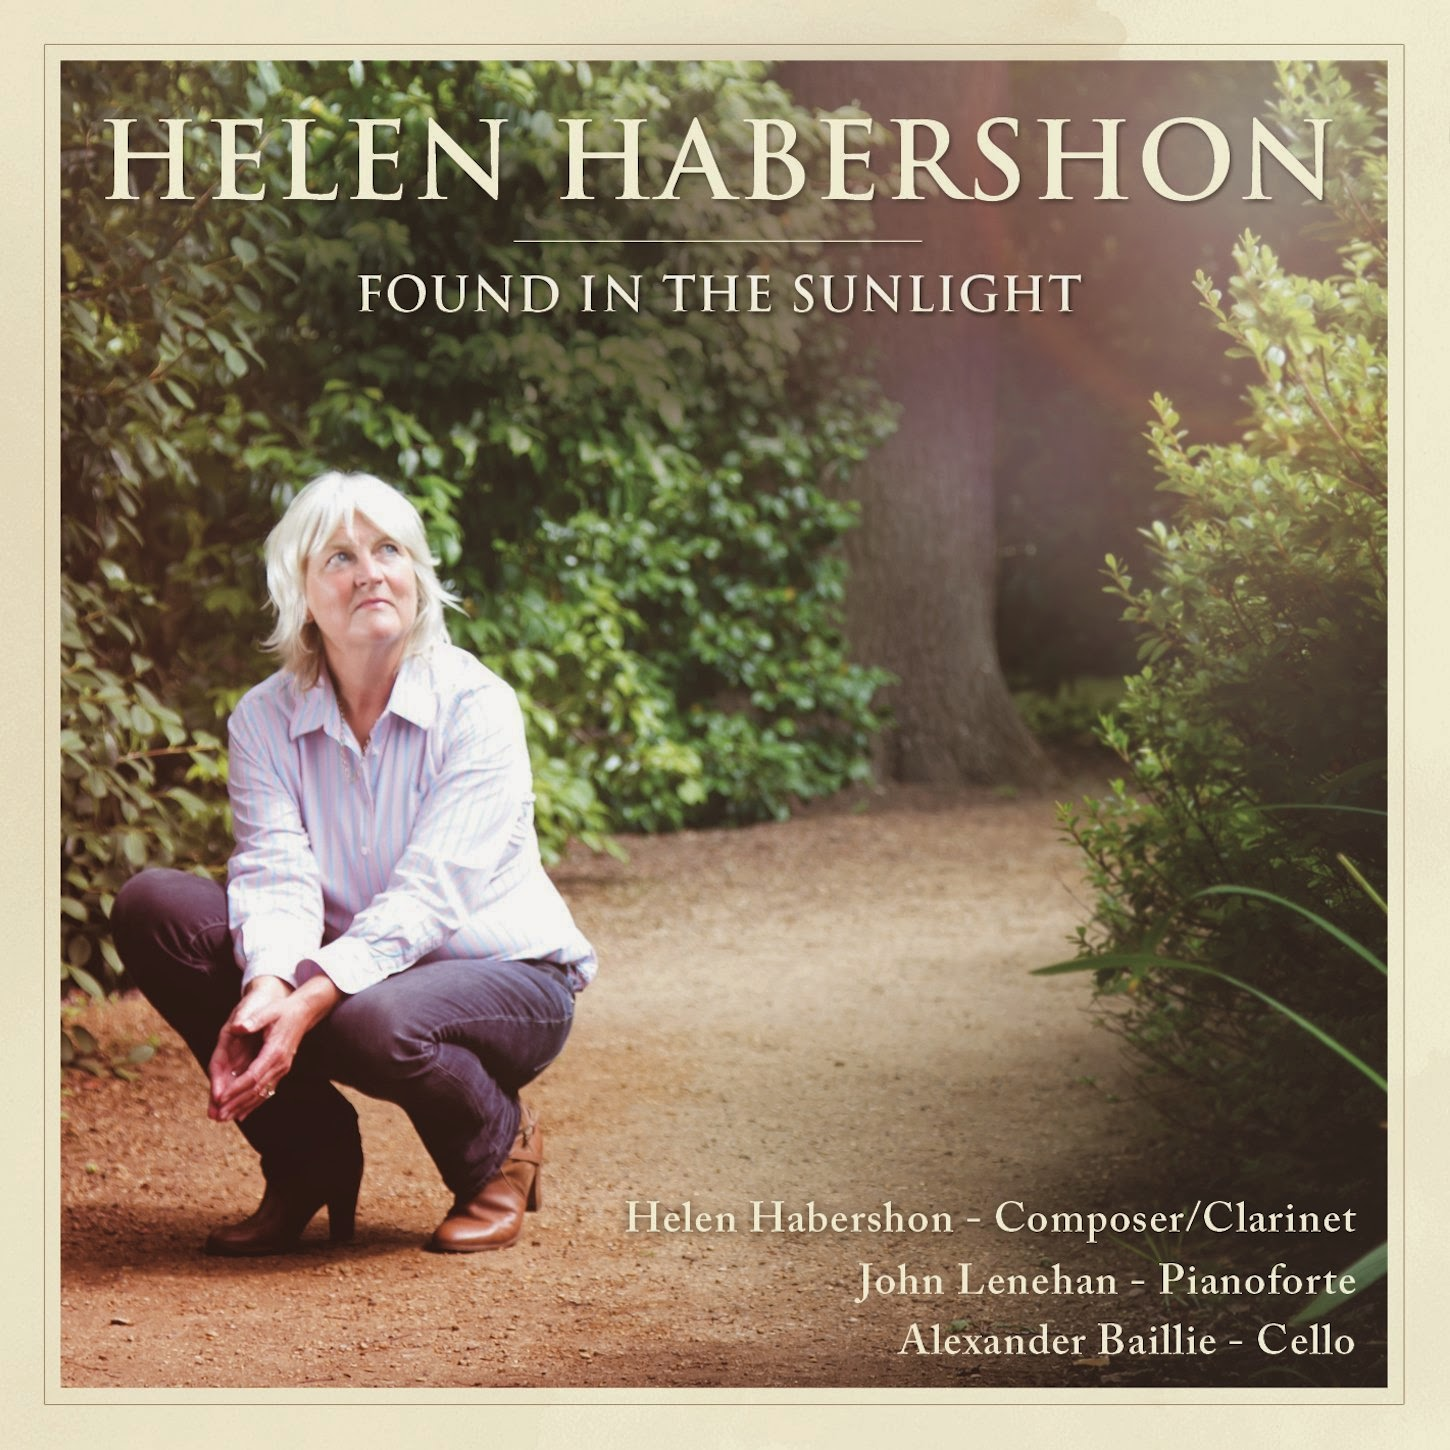 Helen Habershon - Found in Sunlight